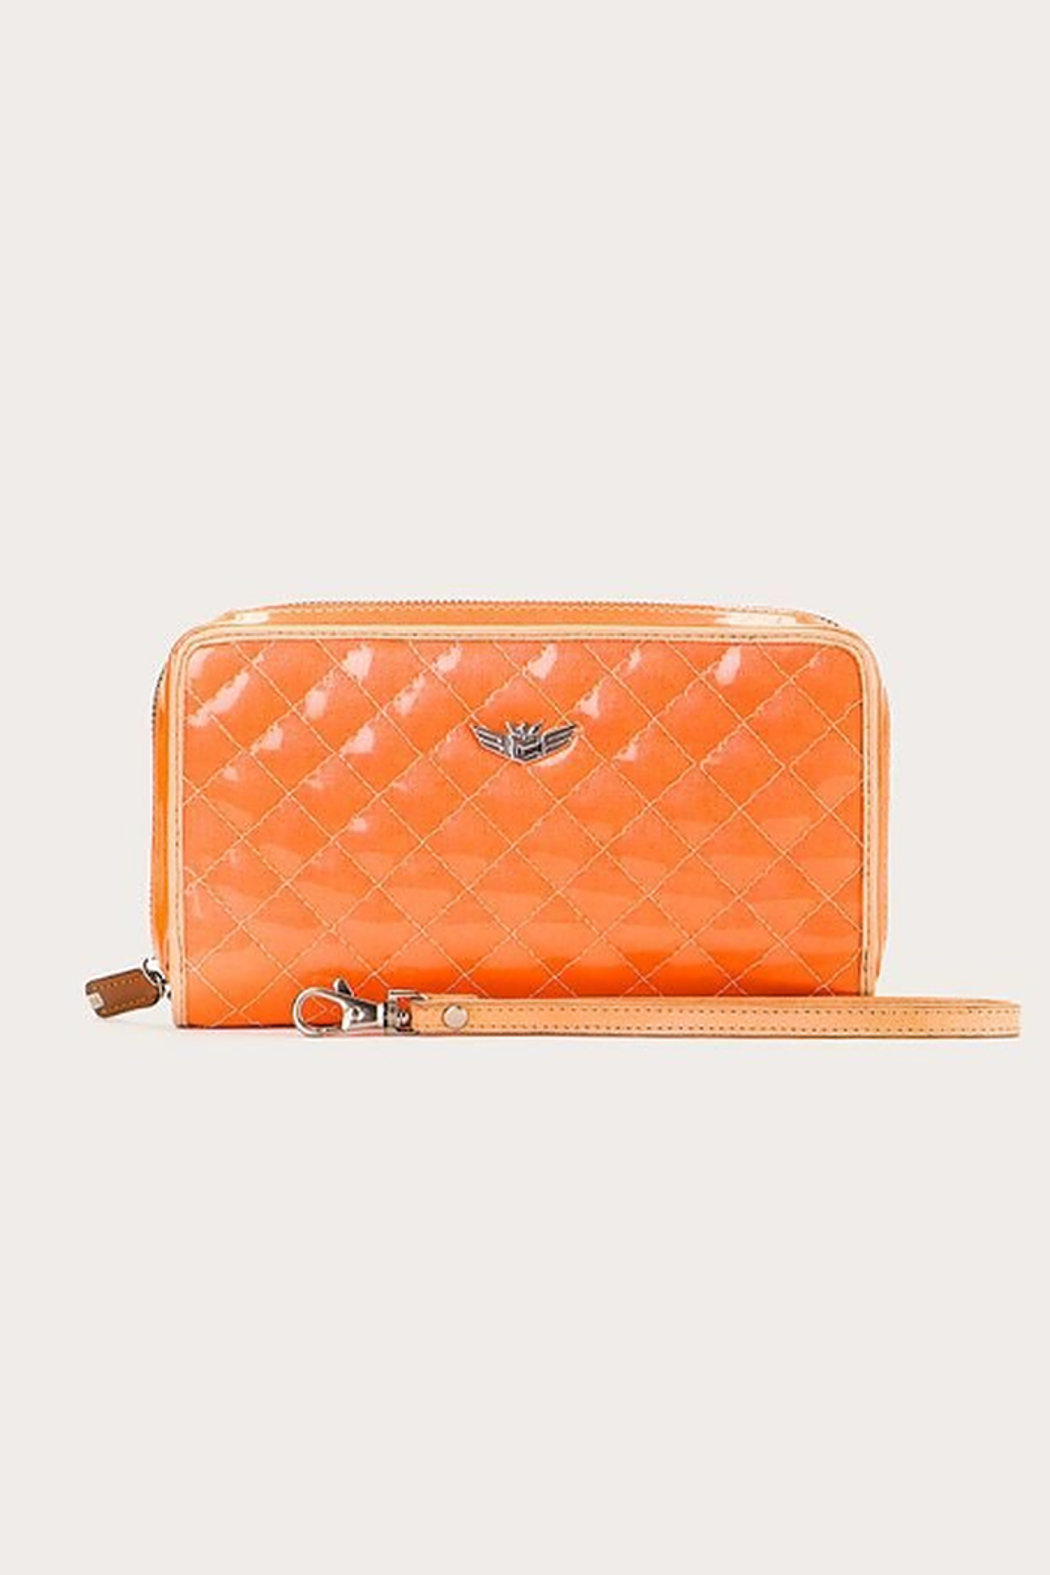 The Birds Nest CLASSIC WRISTLET WALLET-CANDY TANGERINE DREAM - Main Image